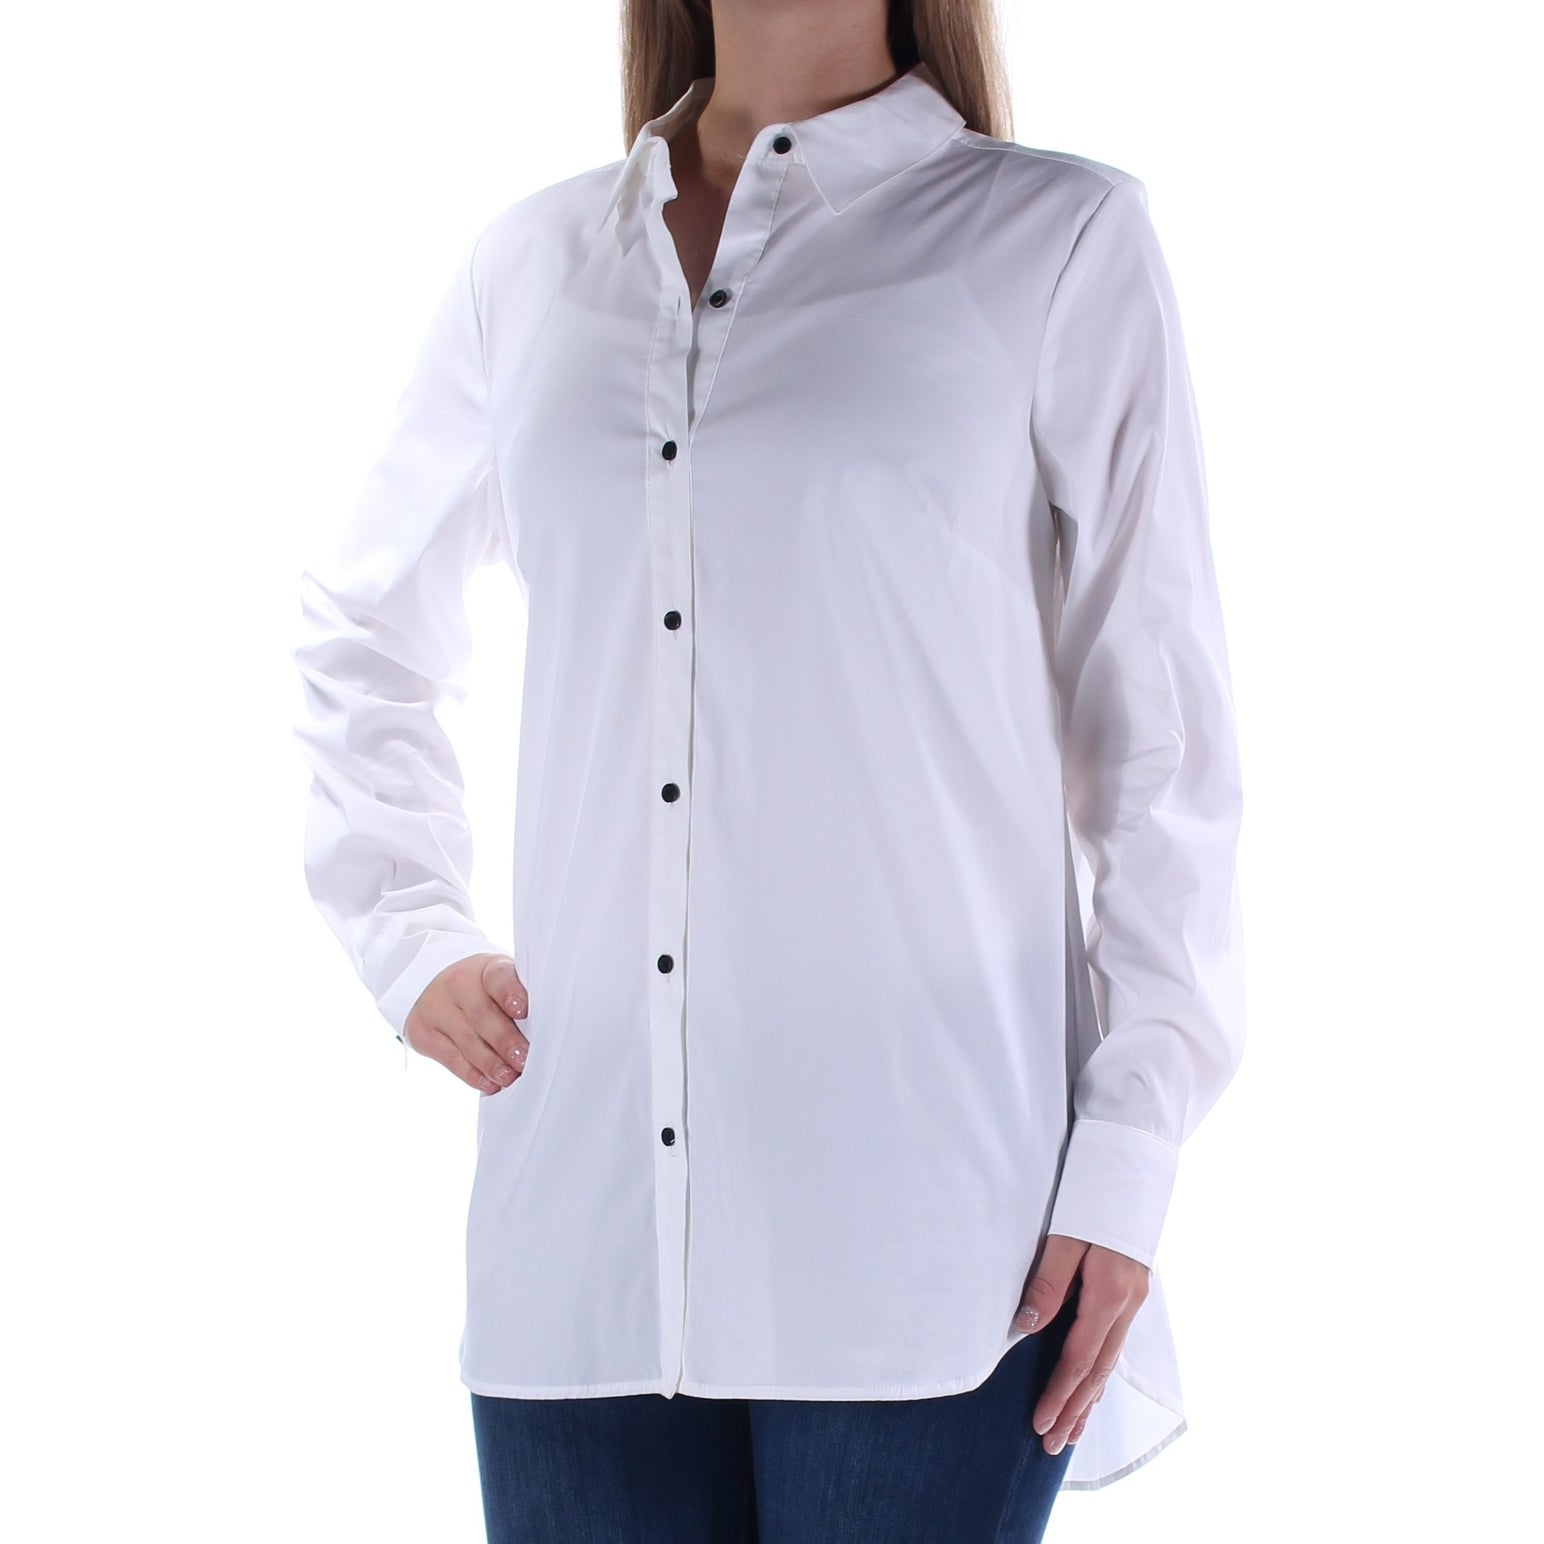 Shop Alfani Womens White Long Sleeve Collared Button Up Top Size 12